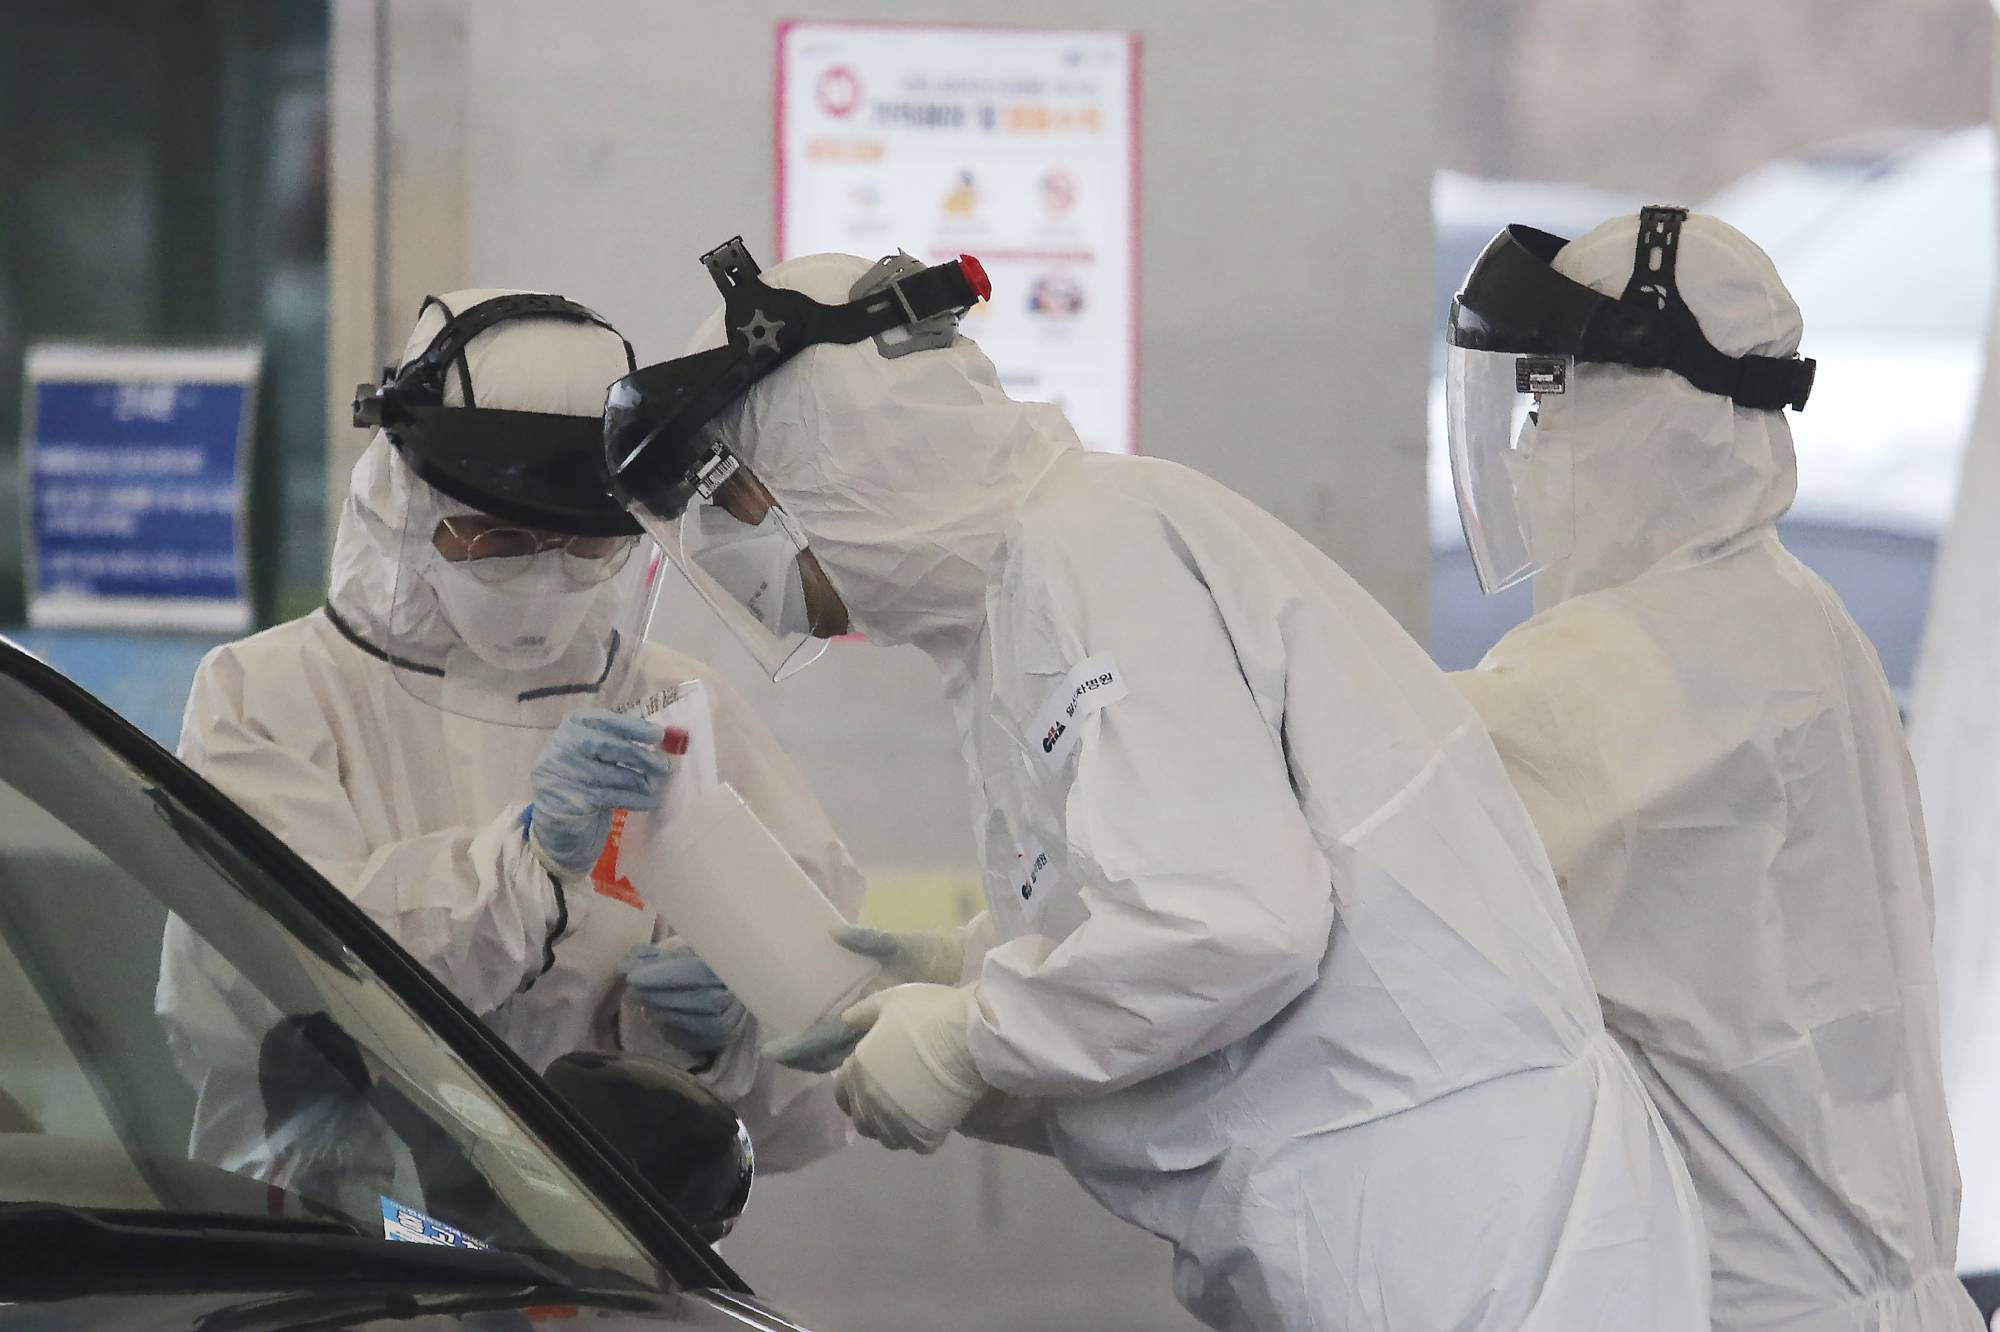 Medical staff wearing protective suits take samples from a person with suspected symptoms of the new coronavirus at a drive-thru testing facility in Goyang, South Korea, on March 1. | AP